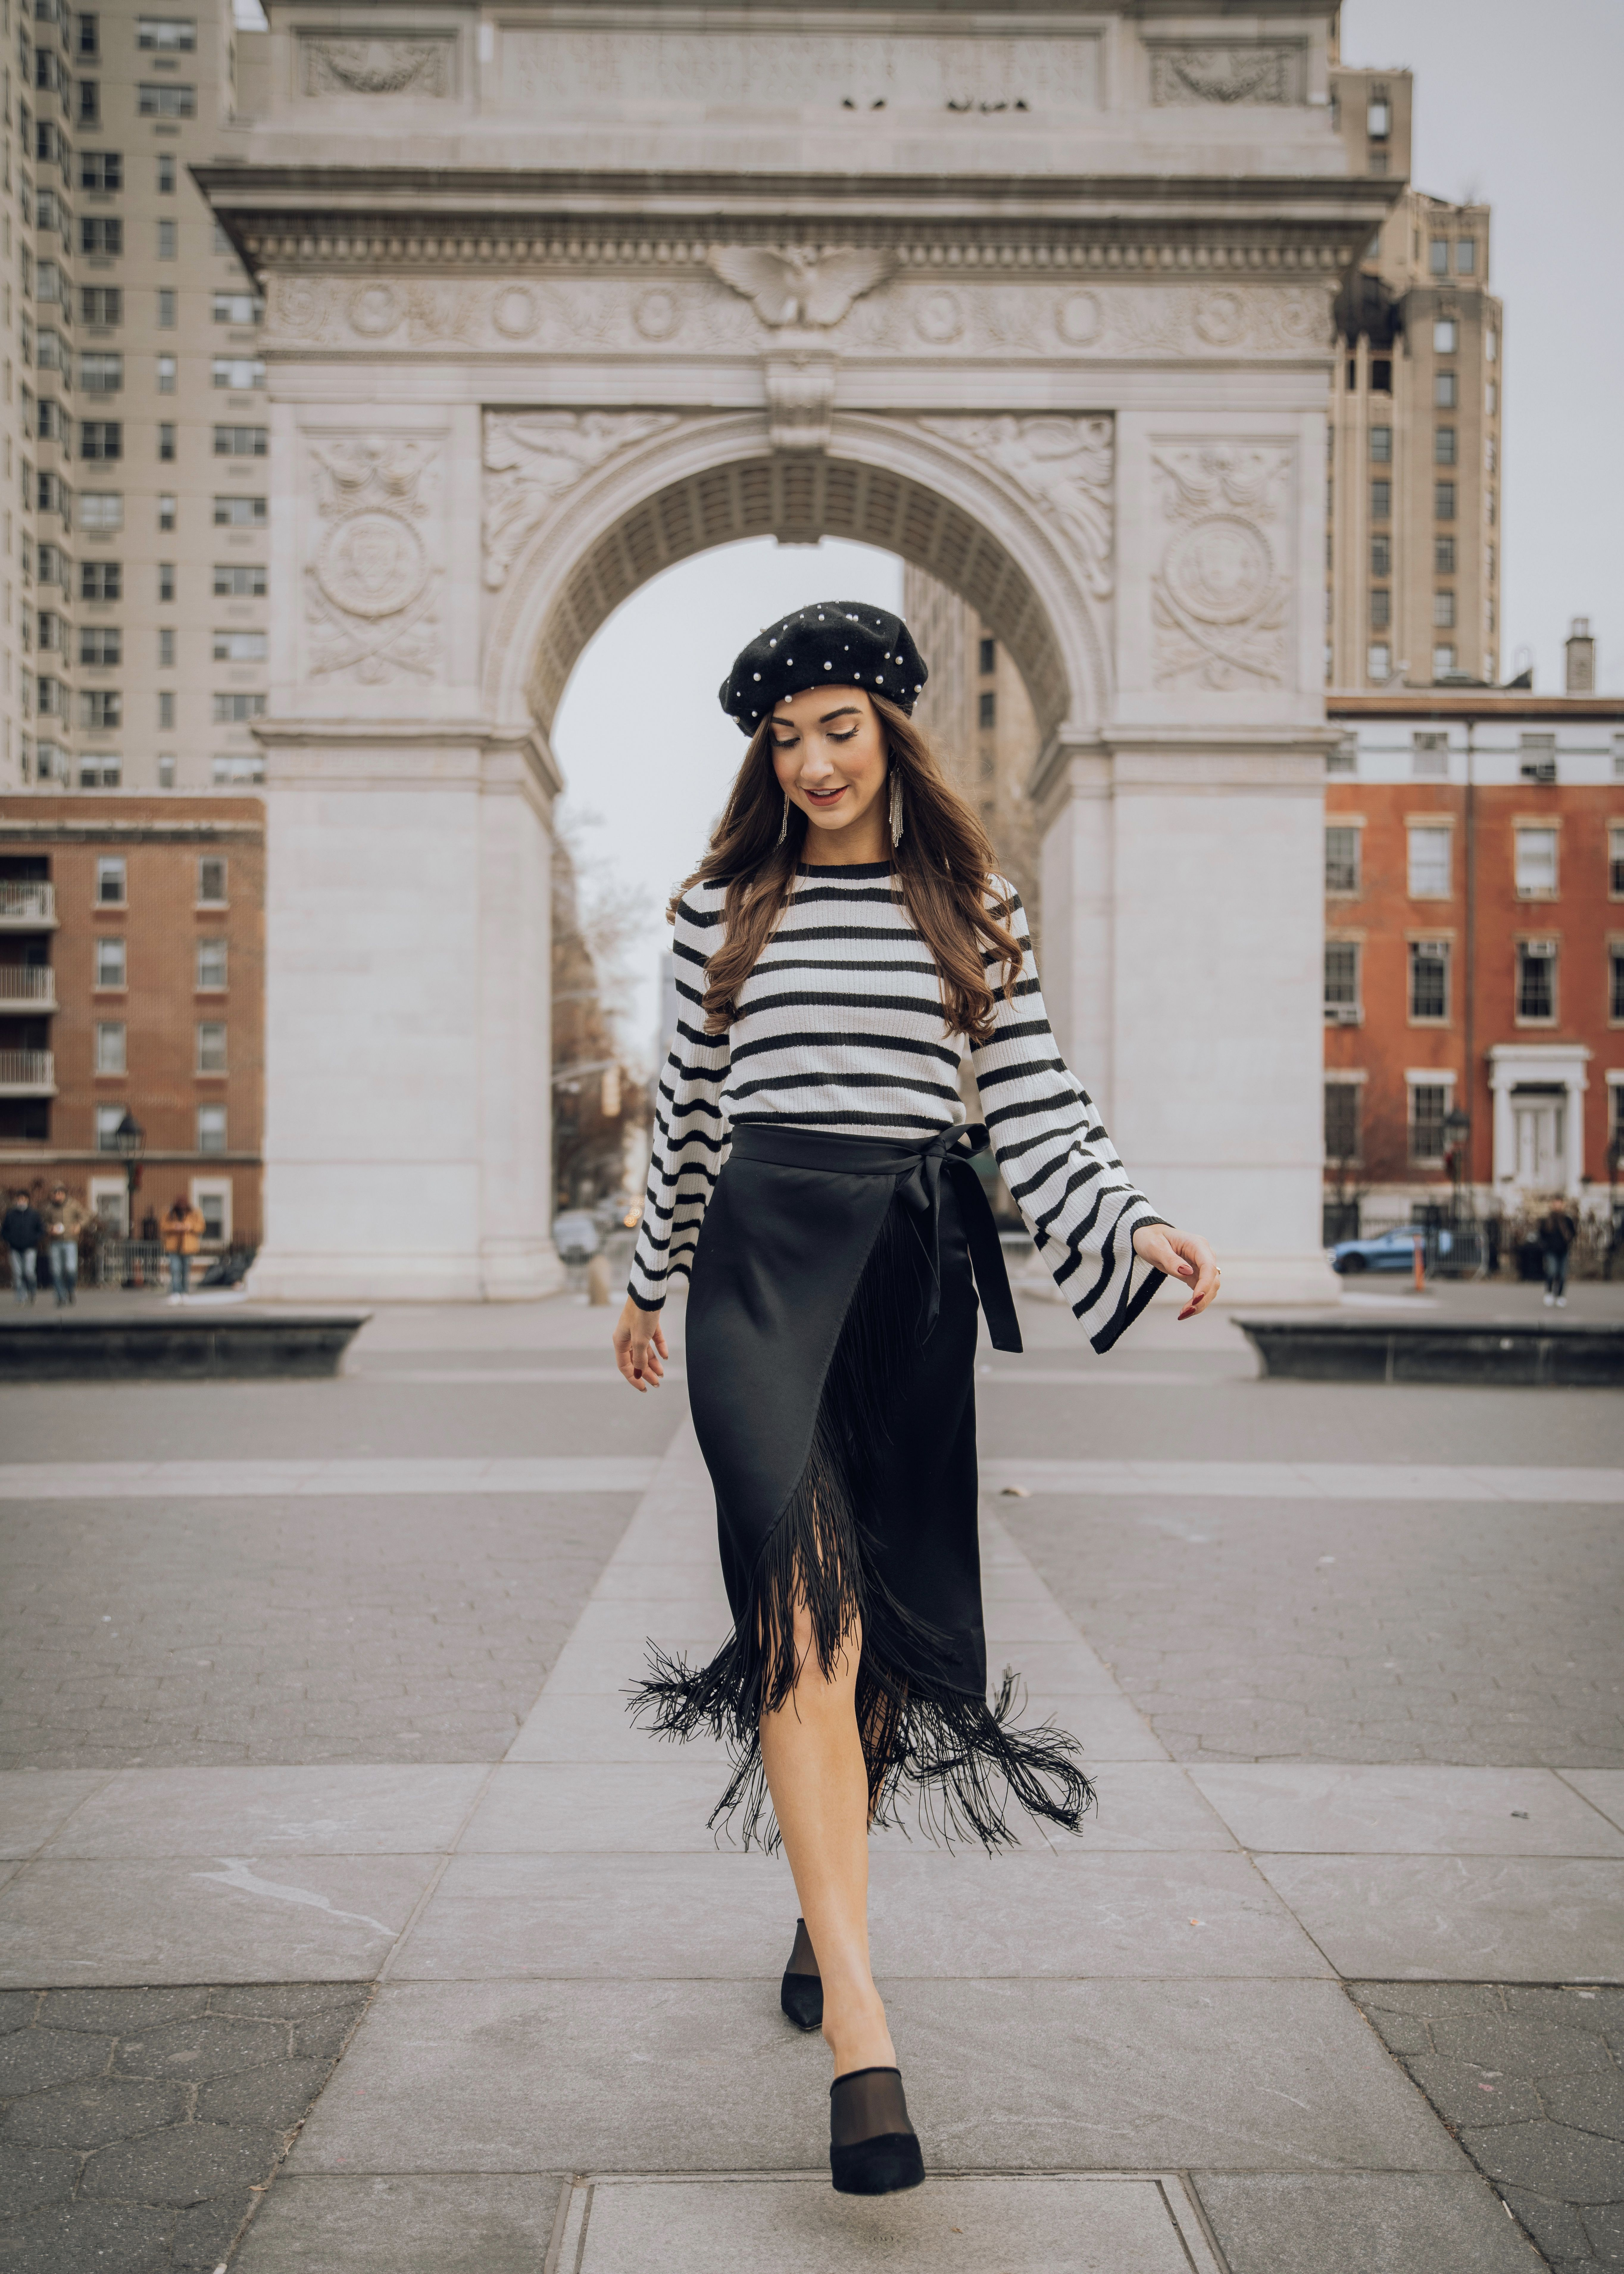 529d64fd0274 5 Outfit Ideas For Your Office Holiday Party - theIncogneatist  #womensfashion #ootd #bloggerstyle #nycstyle #nycfashion #womensstyle  #trendyoutfit ...